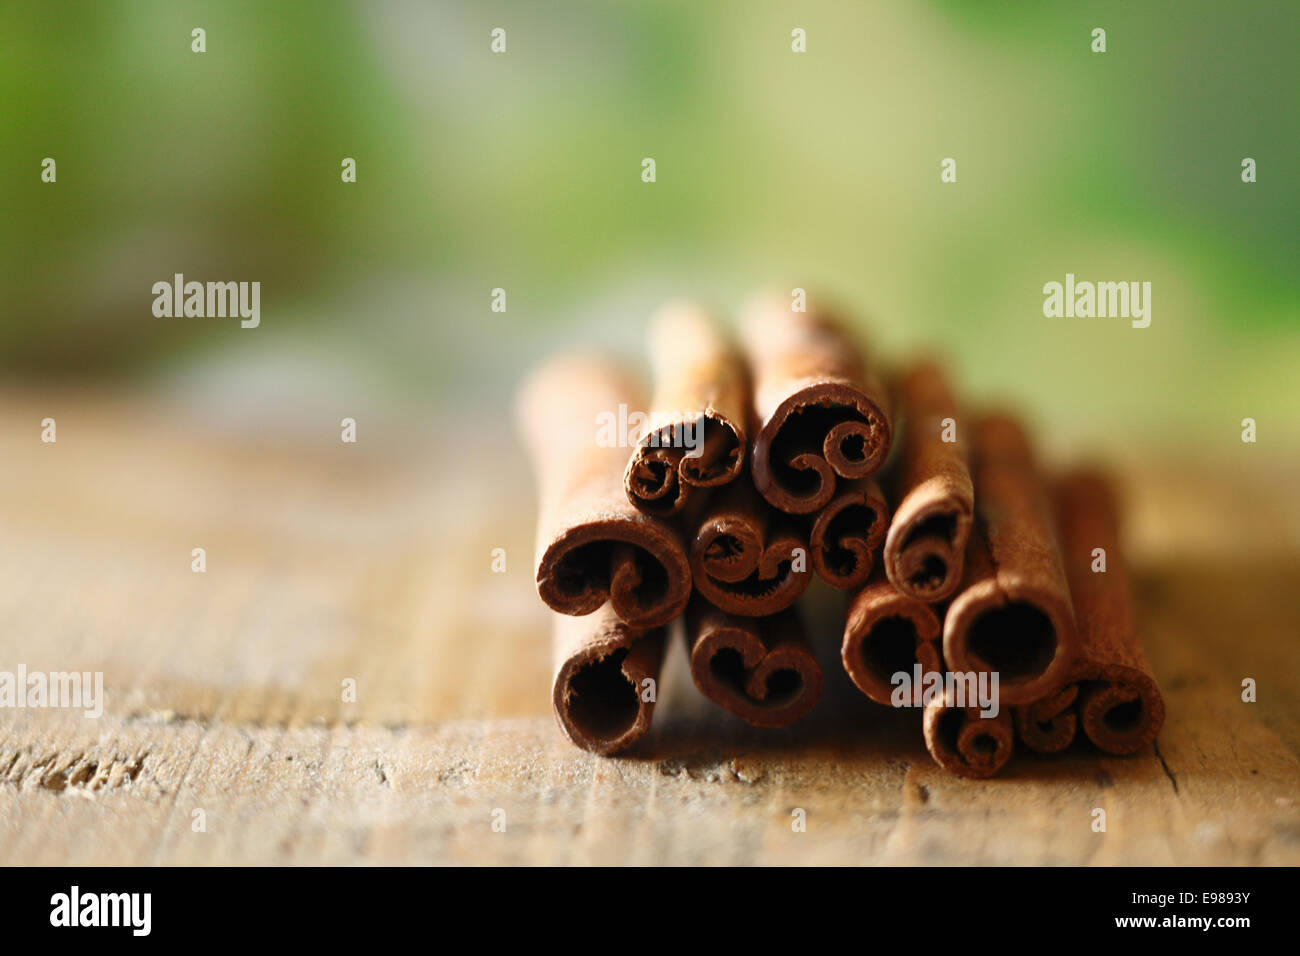 Closeup of a bunch of dried spicy cinammon sticks on a wooden surface with copyspace - Stock Image